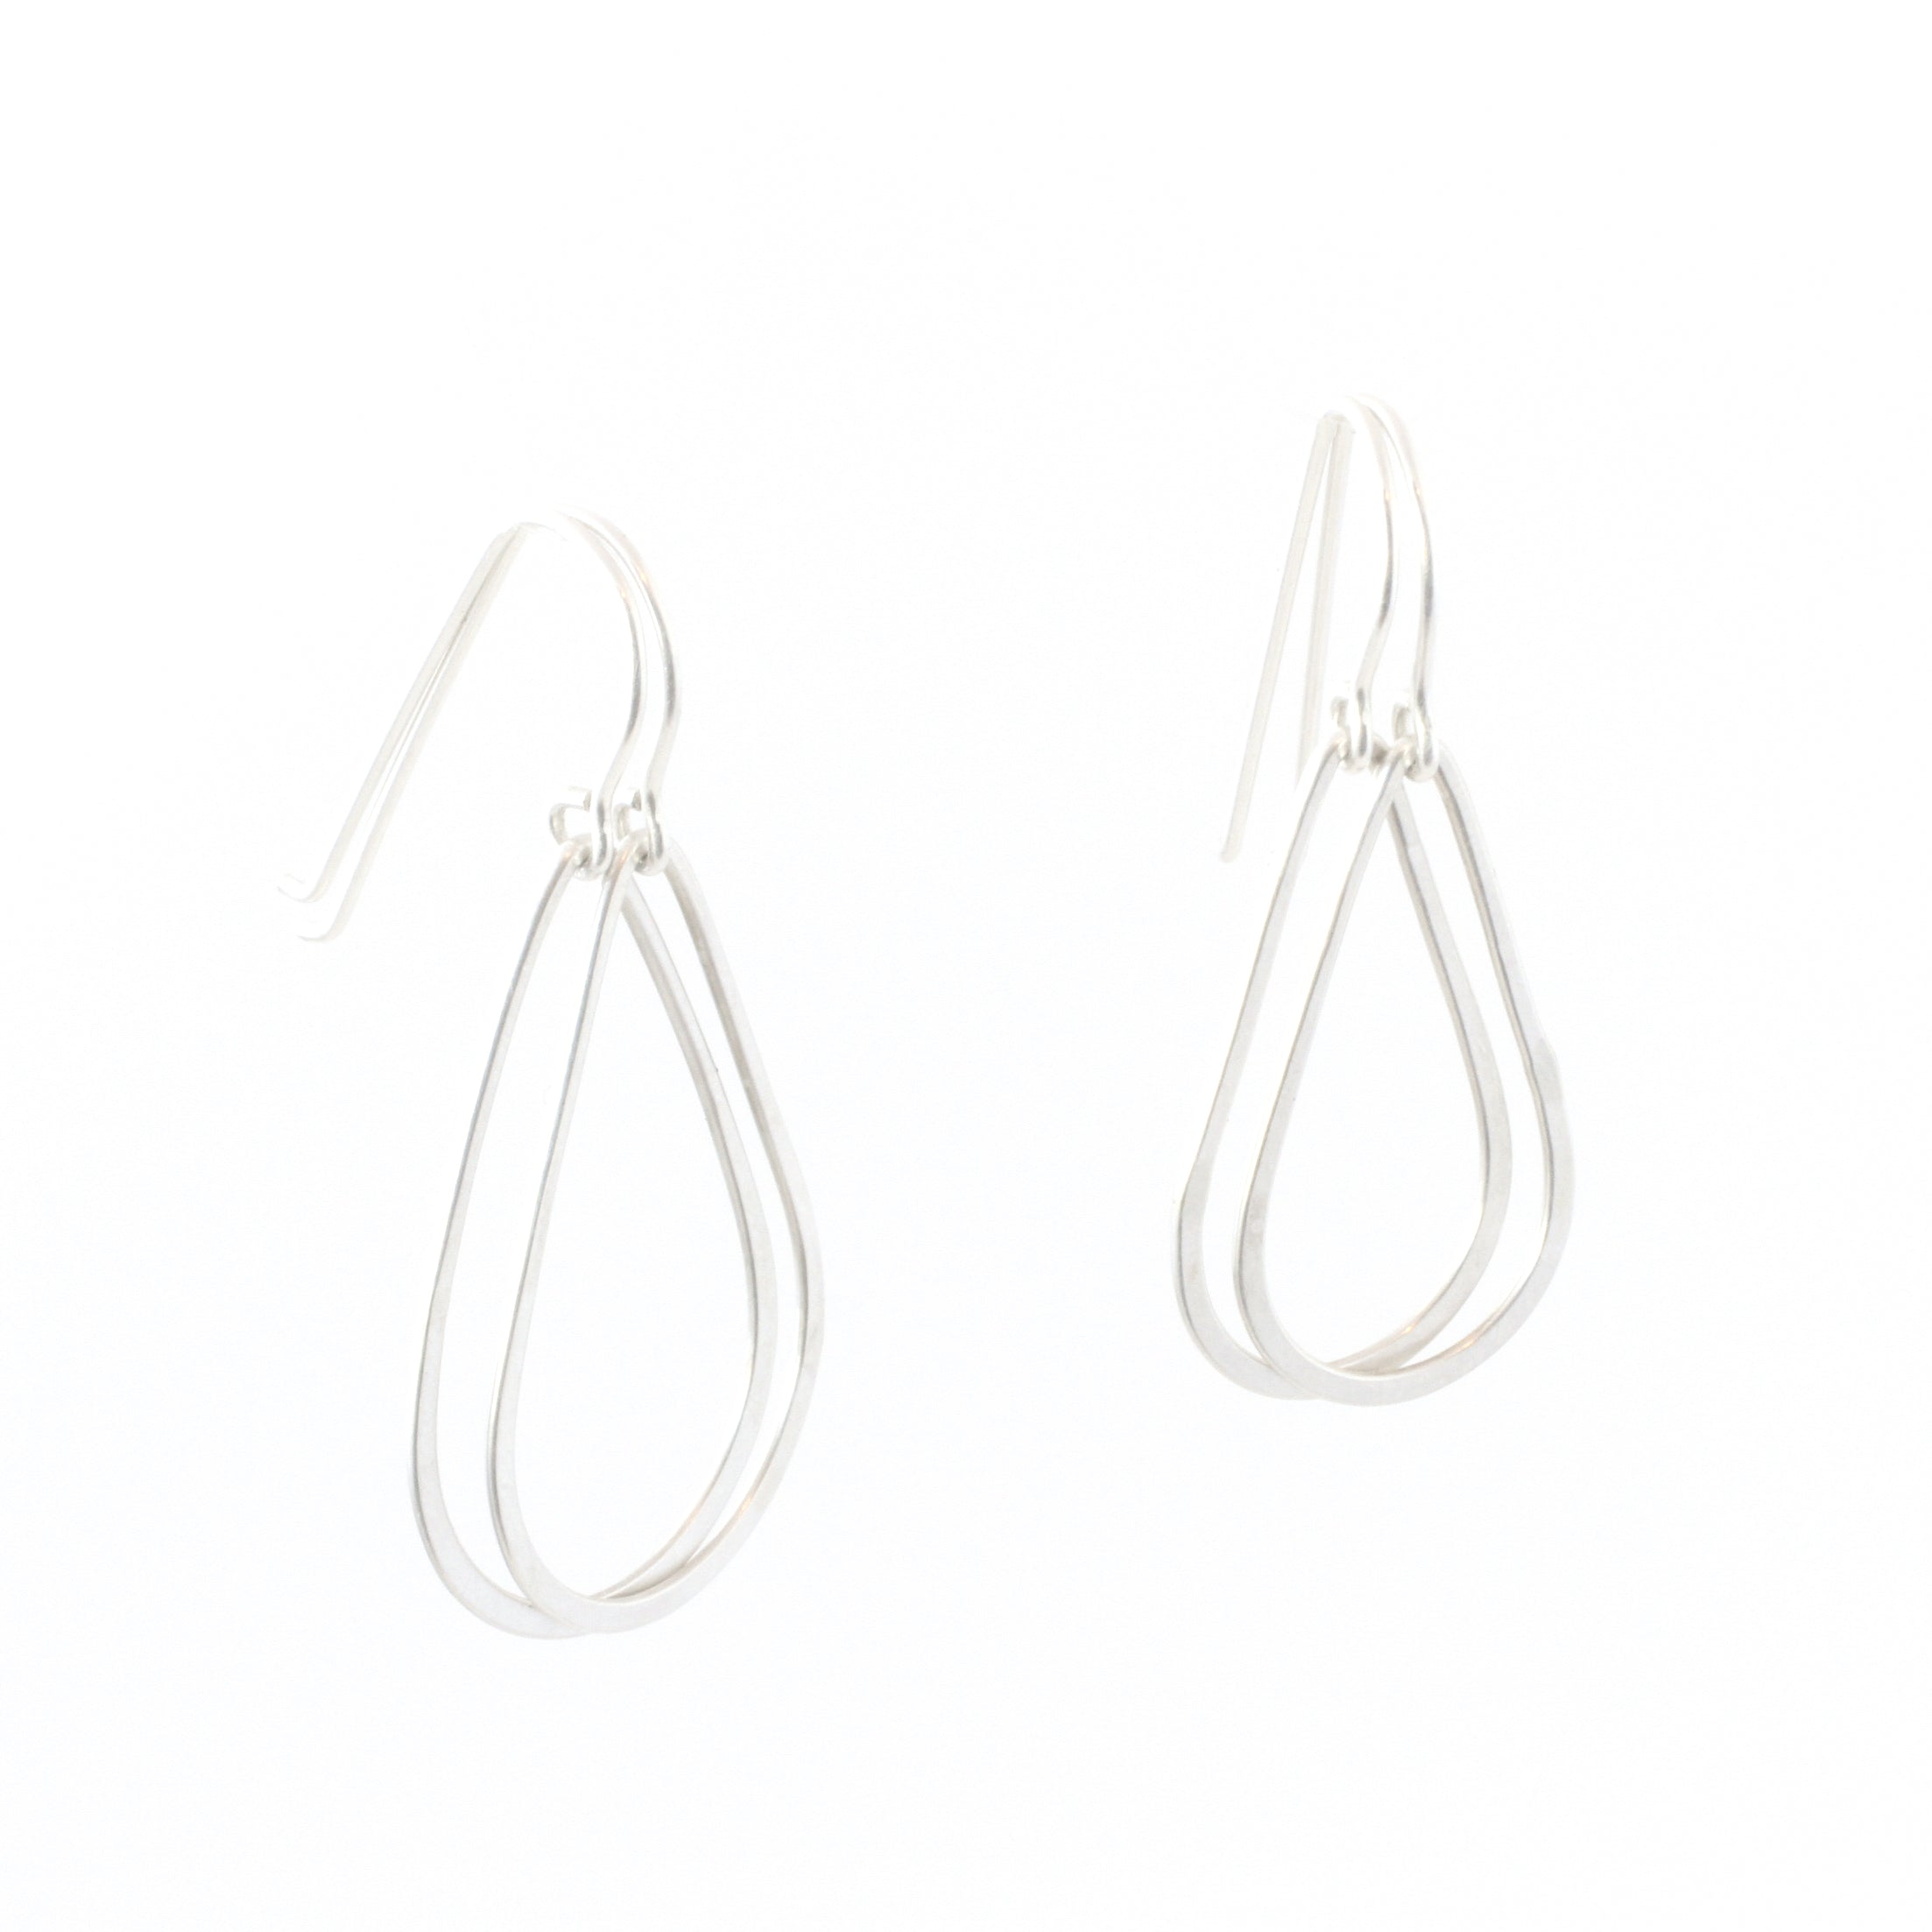 Small and large sizes of teardrop shaped earrings, hanging next to each other.